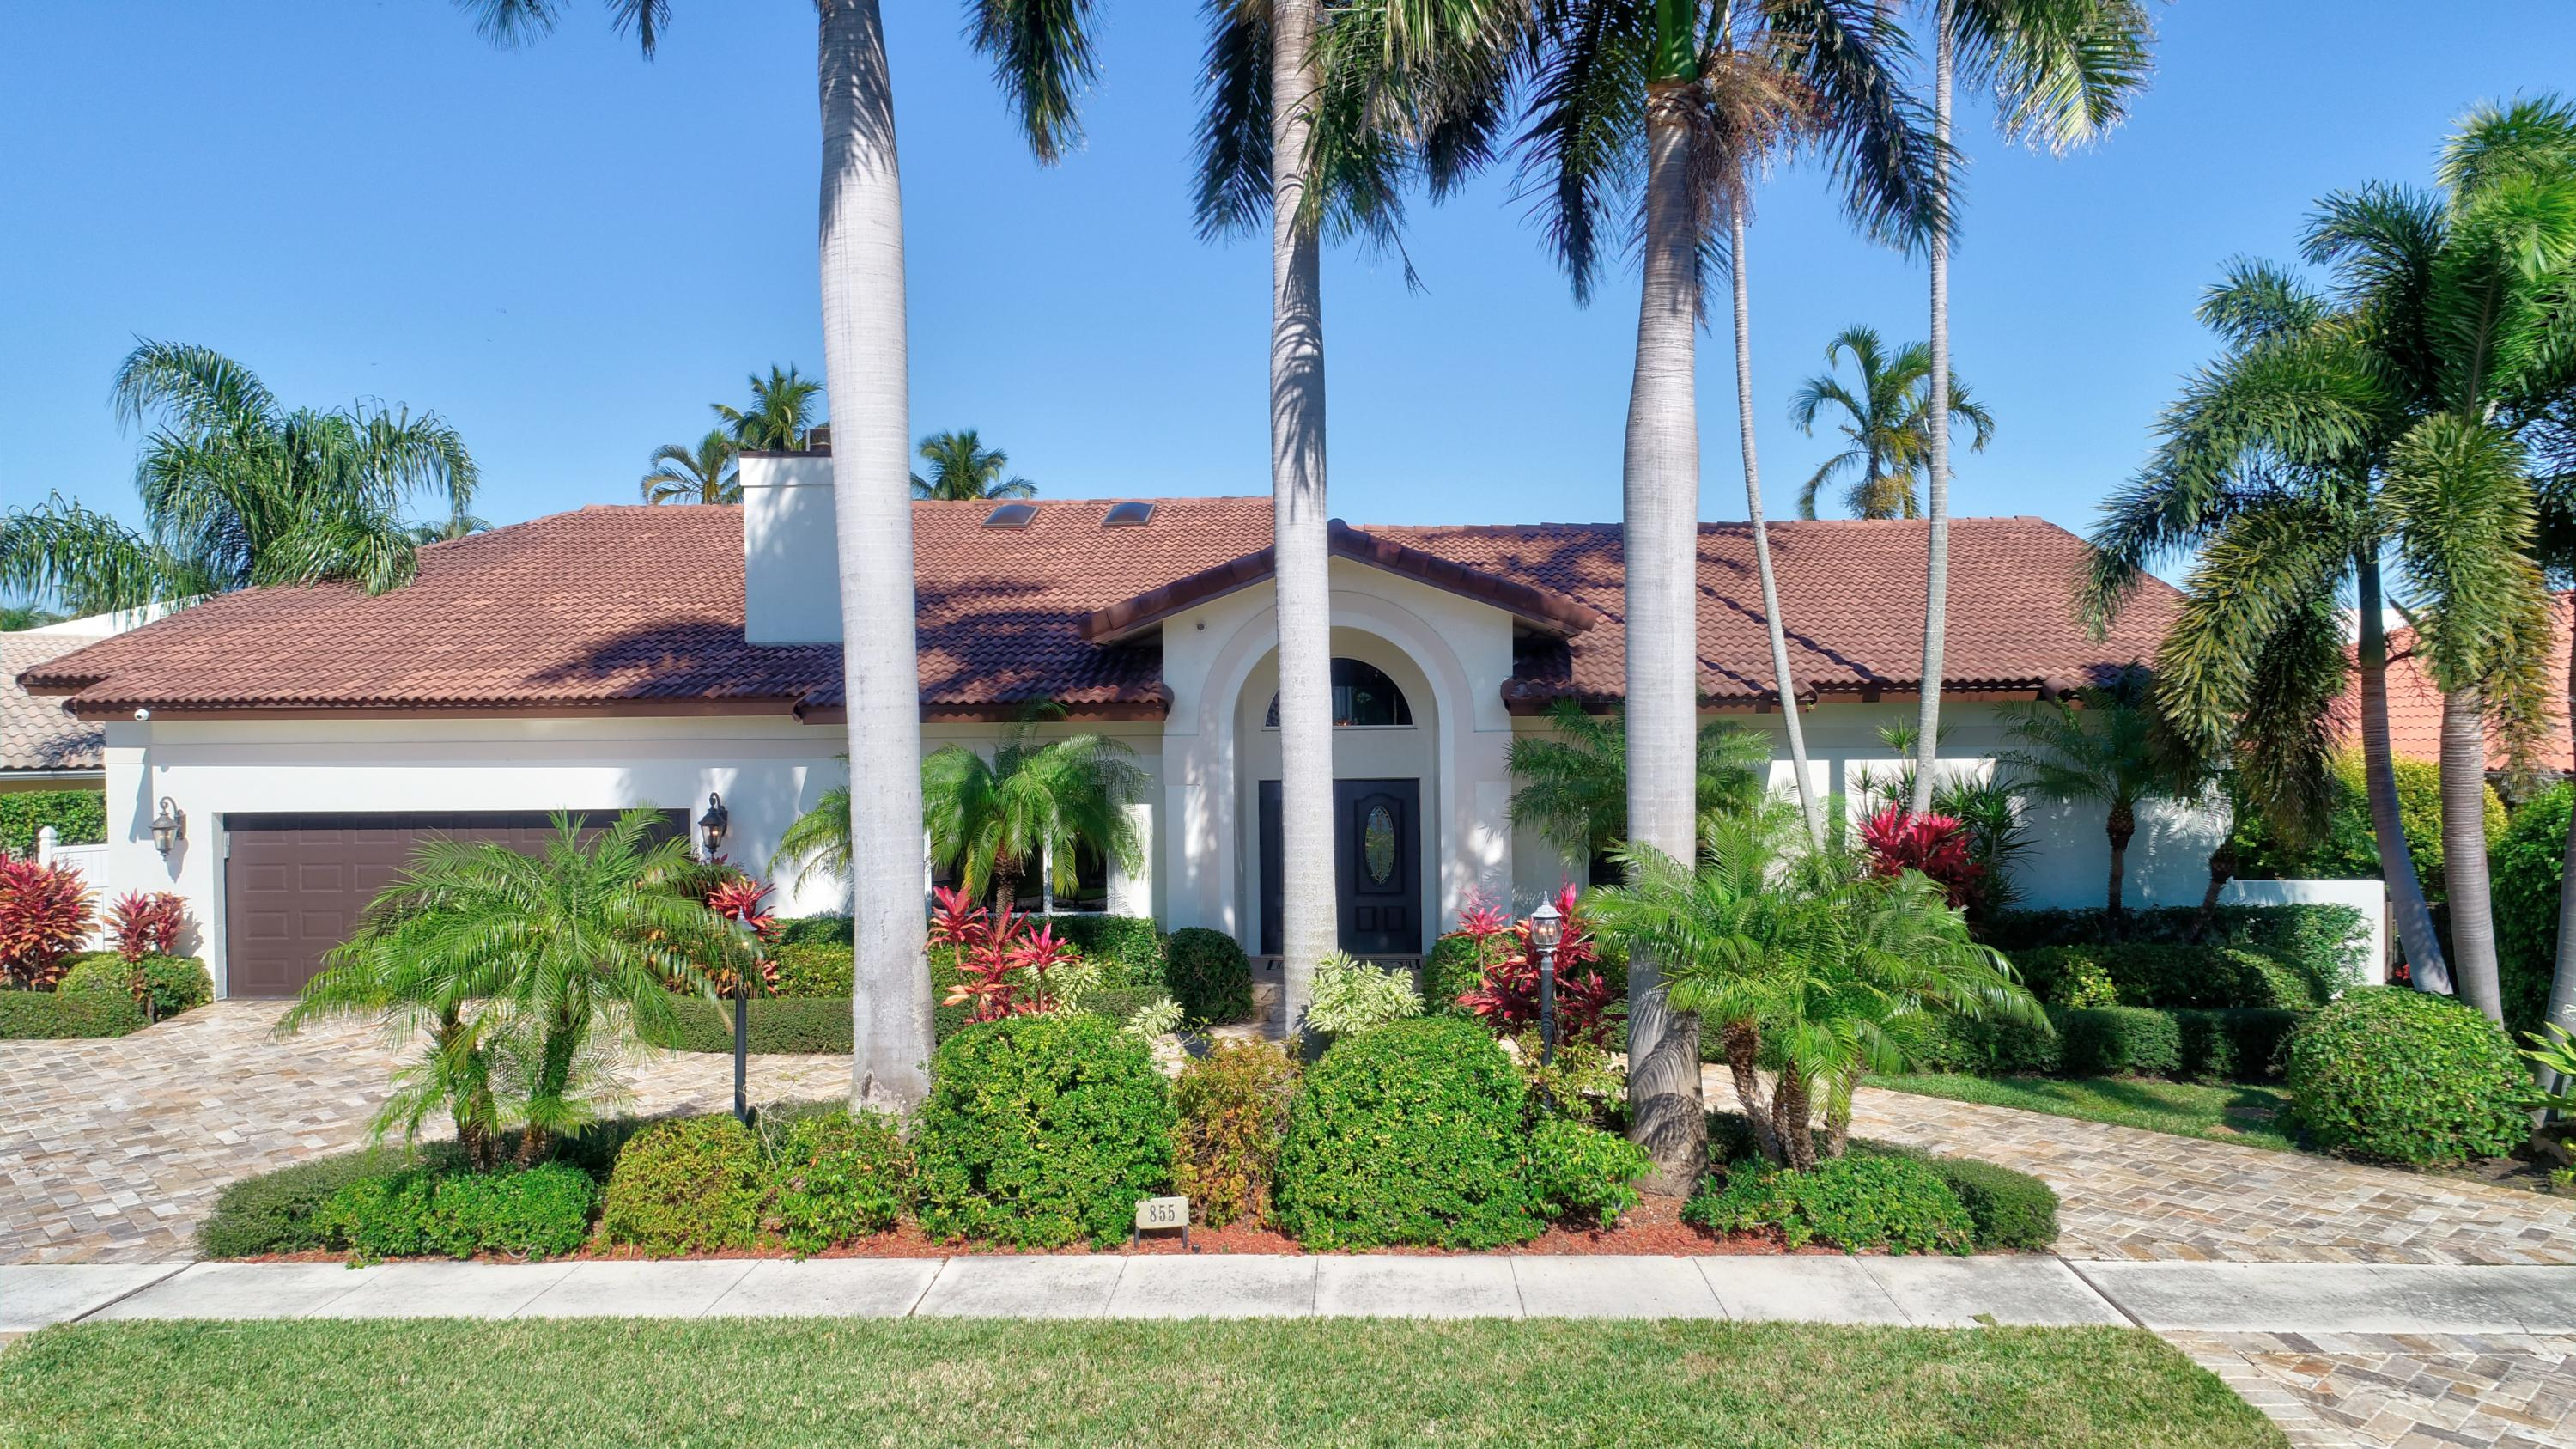 Home for sale in Walkers Cay / Boca Bay Colony Boca Raton Florida